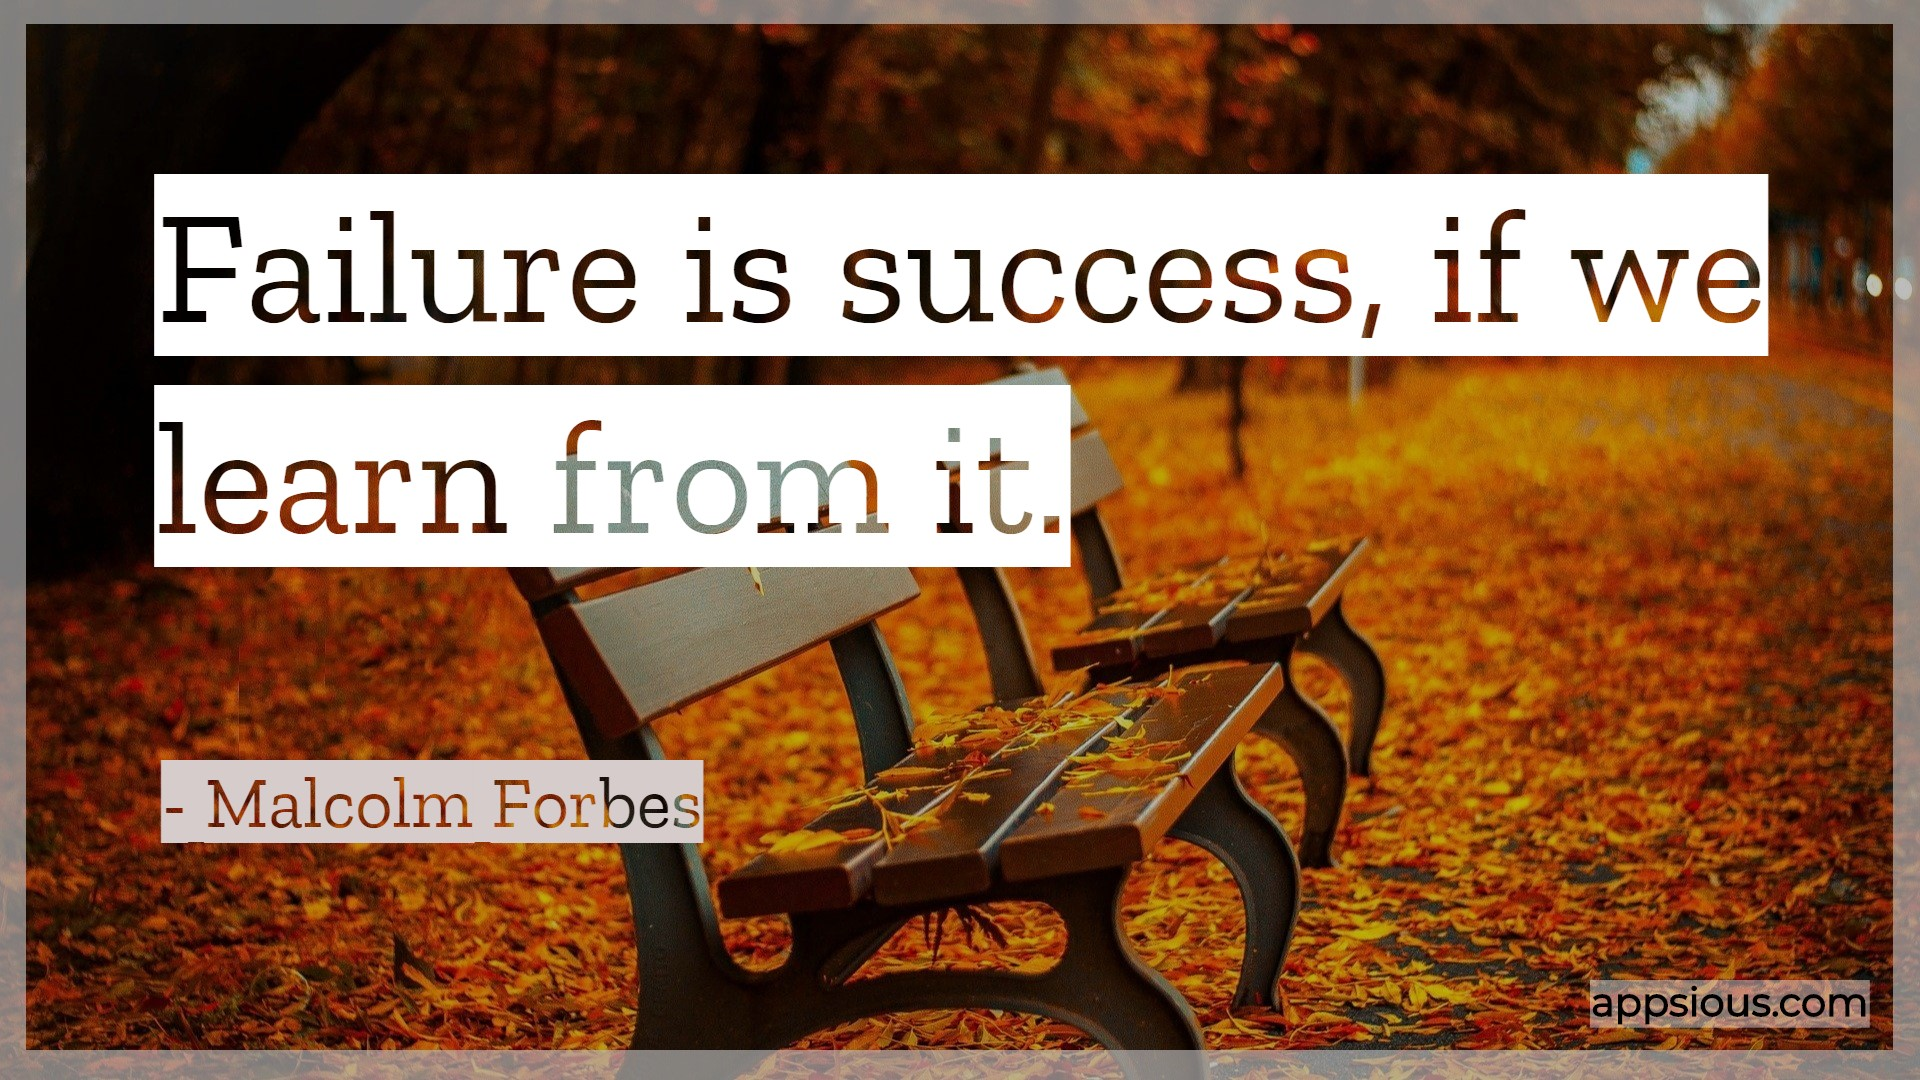 Failure is success, If we learn from it.